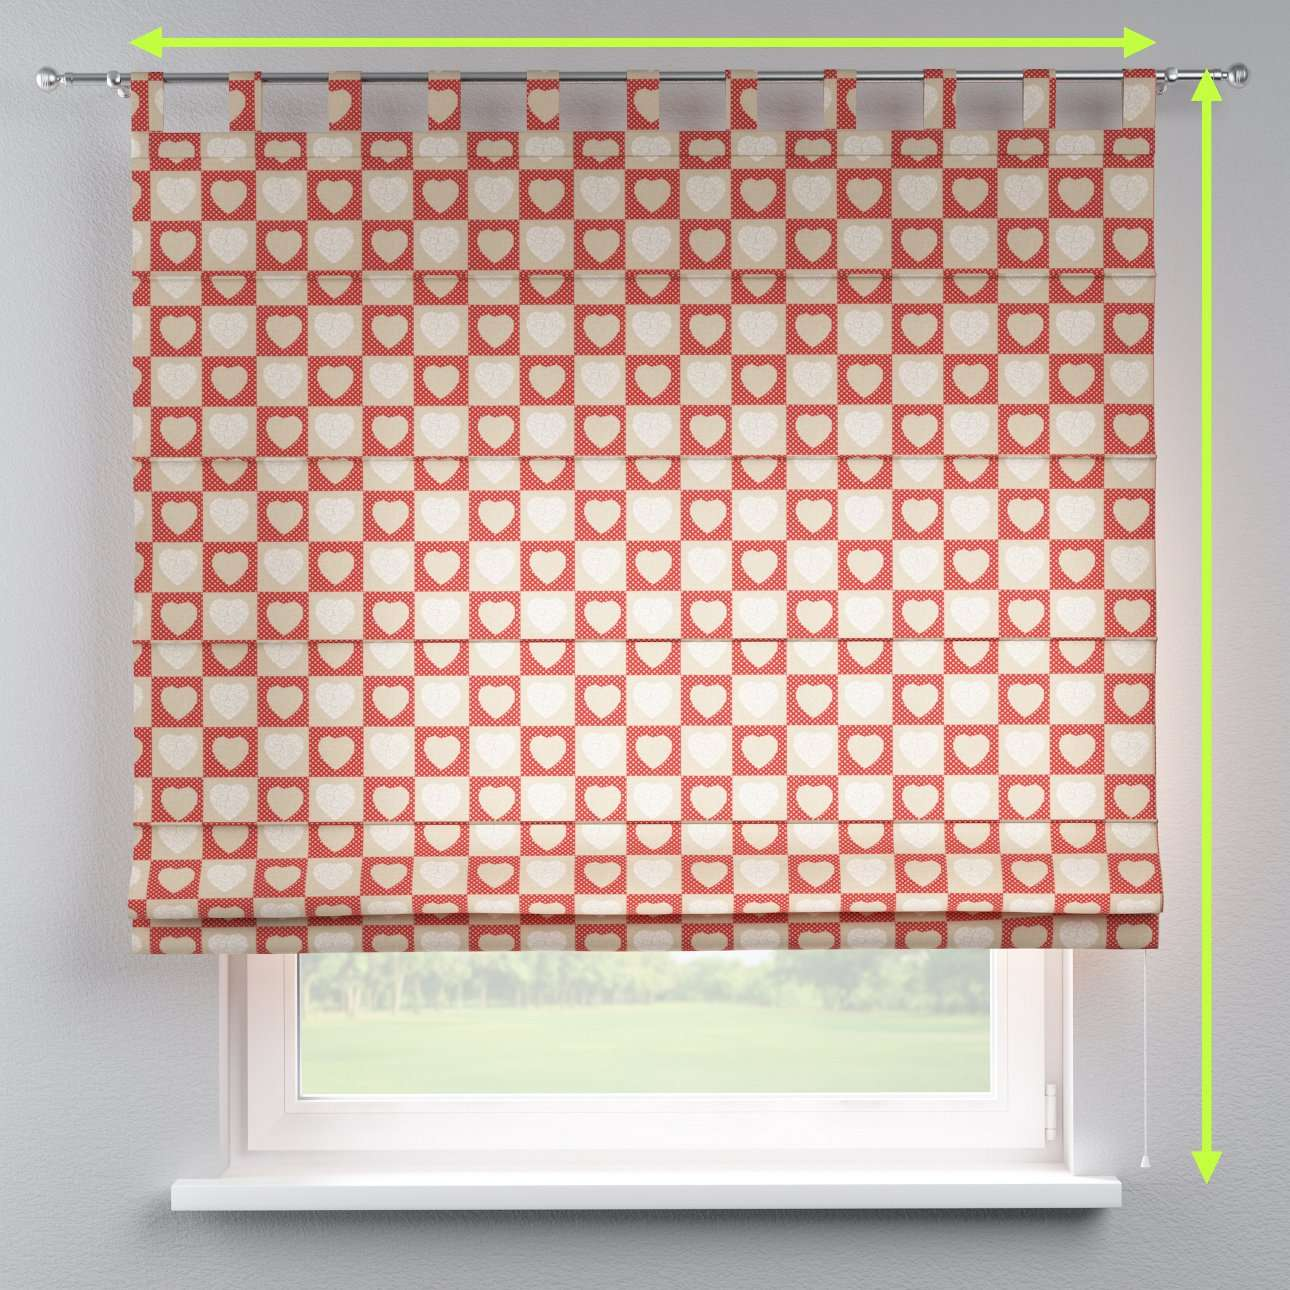 Verona tab top roman blind in collection Freestyle, fabric: 629-16